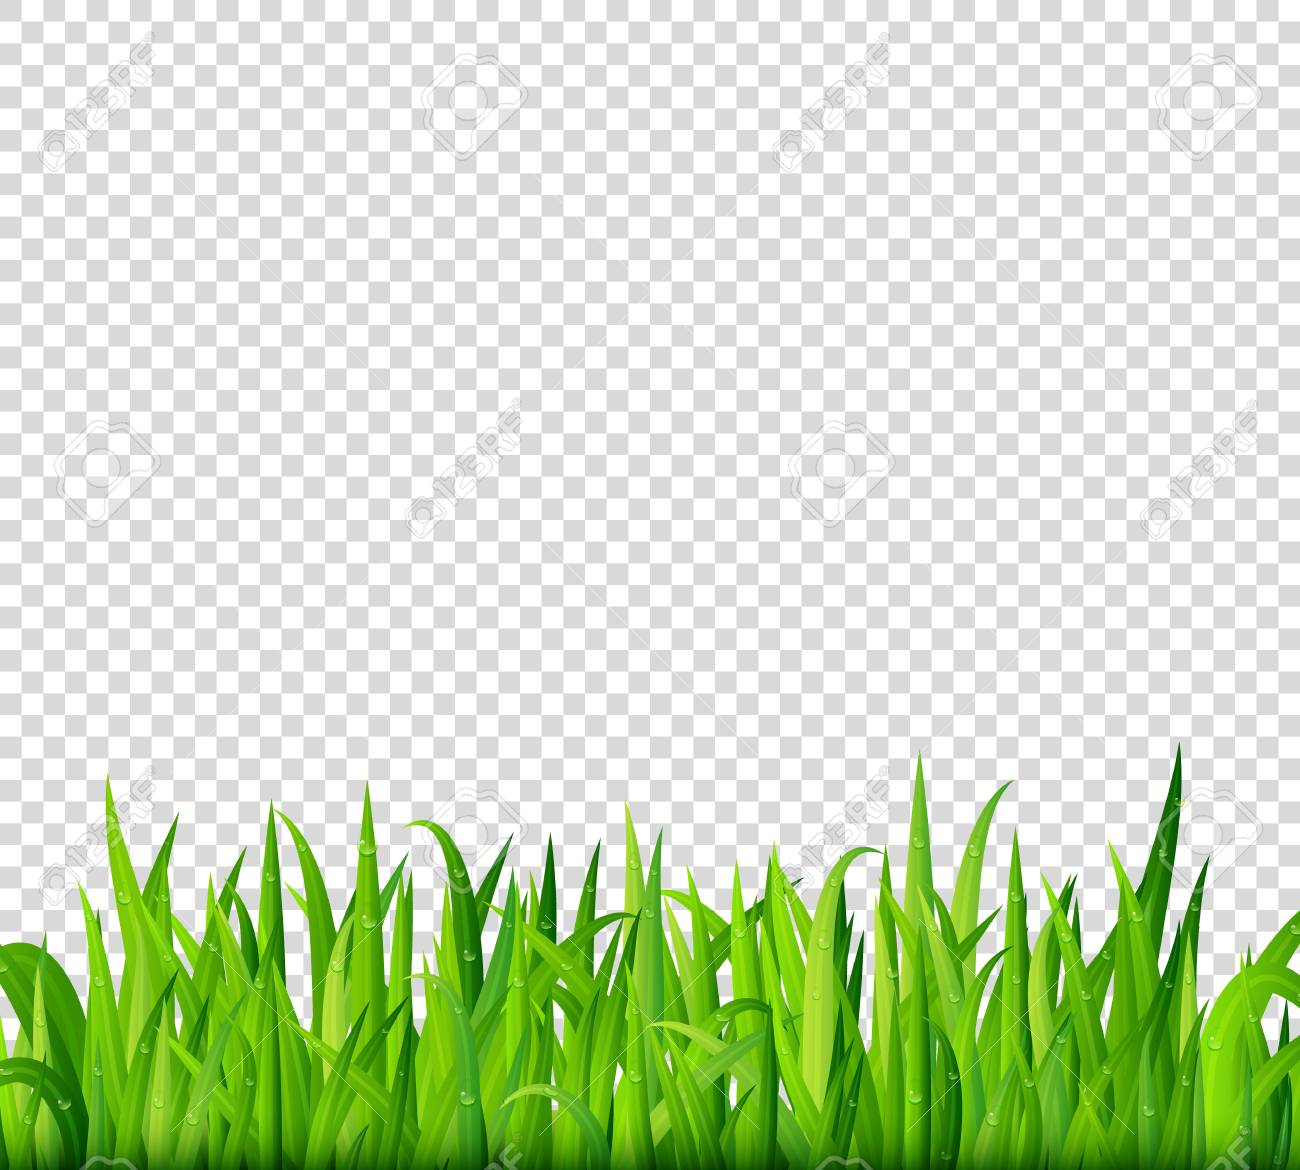 grass border no background clipart green grass border on transparent background vector stock vector 68809653 grass border on transparent background royalty free